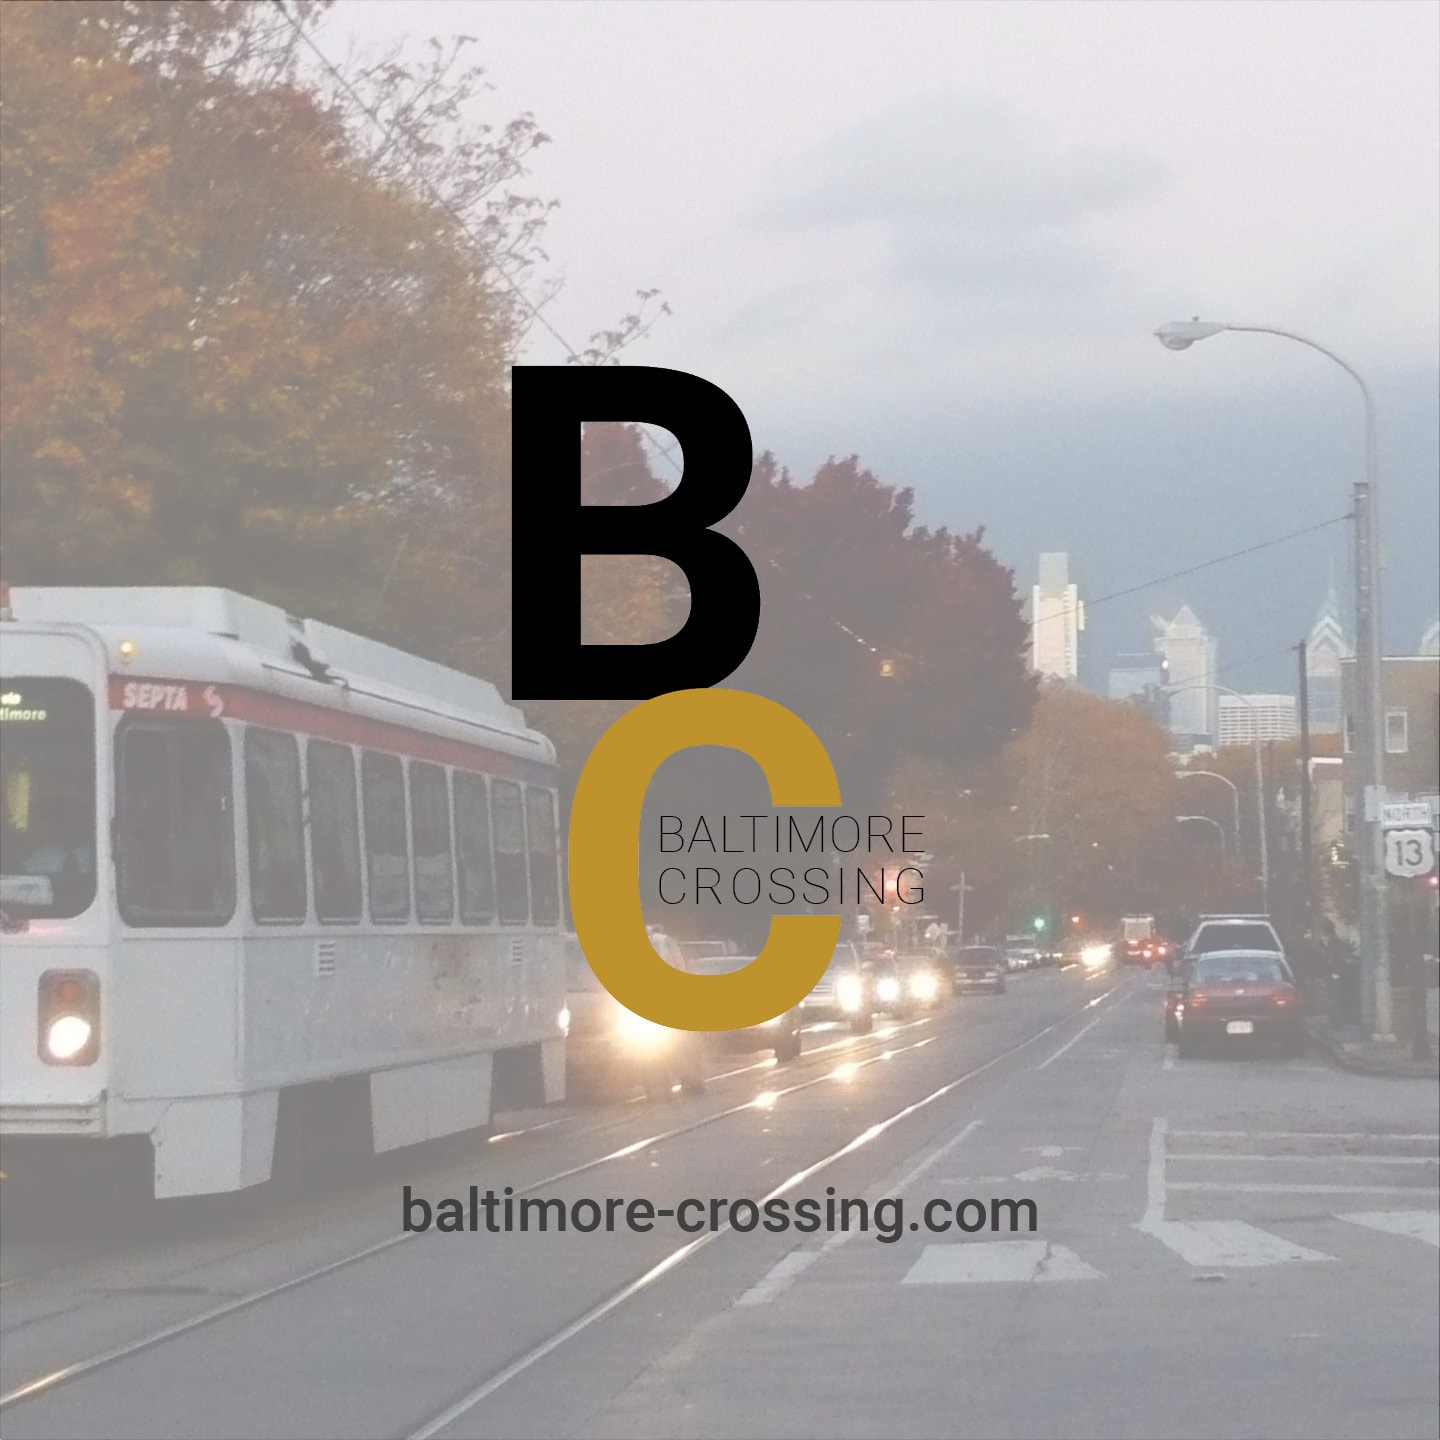 Baltimore Crossing